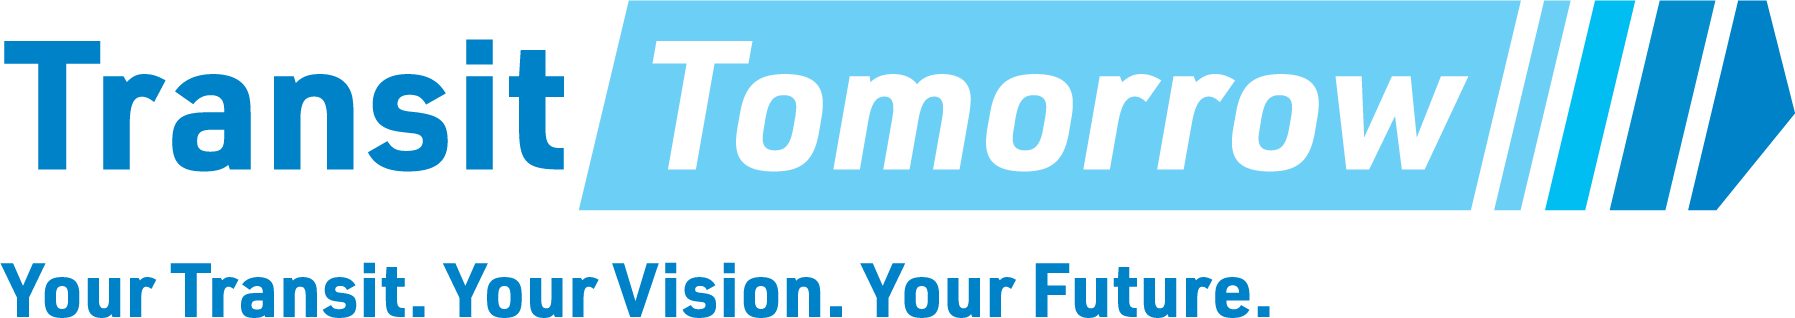 Transit Tomorrow Logo with Headline